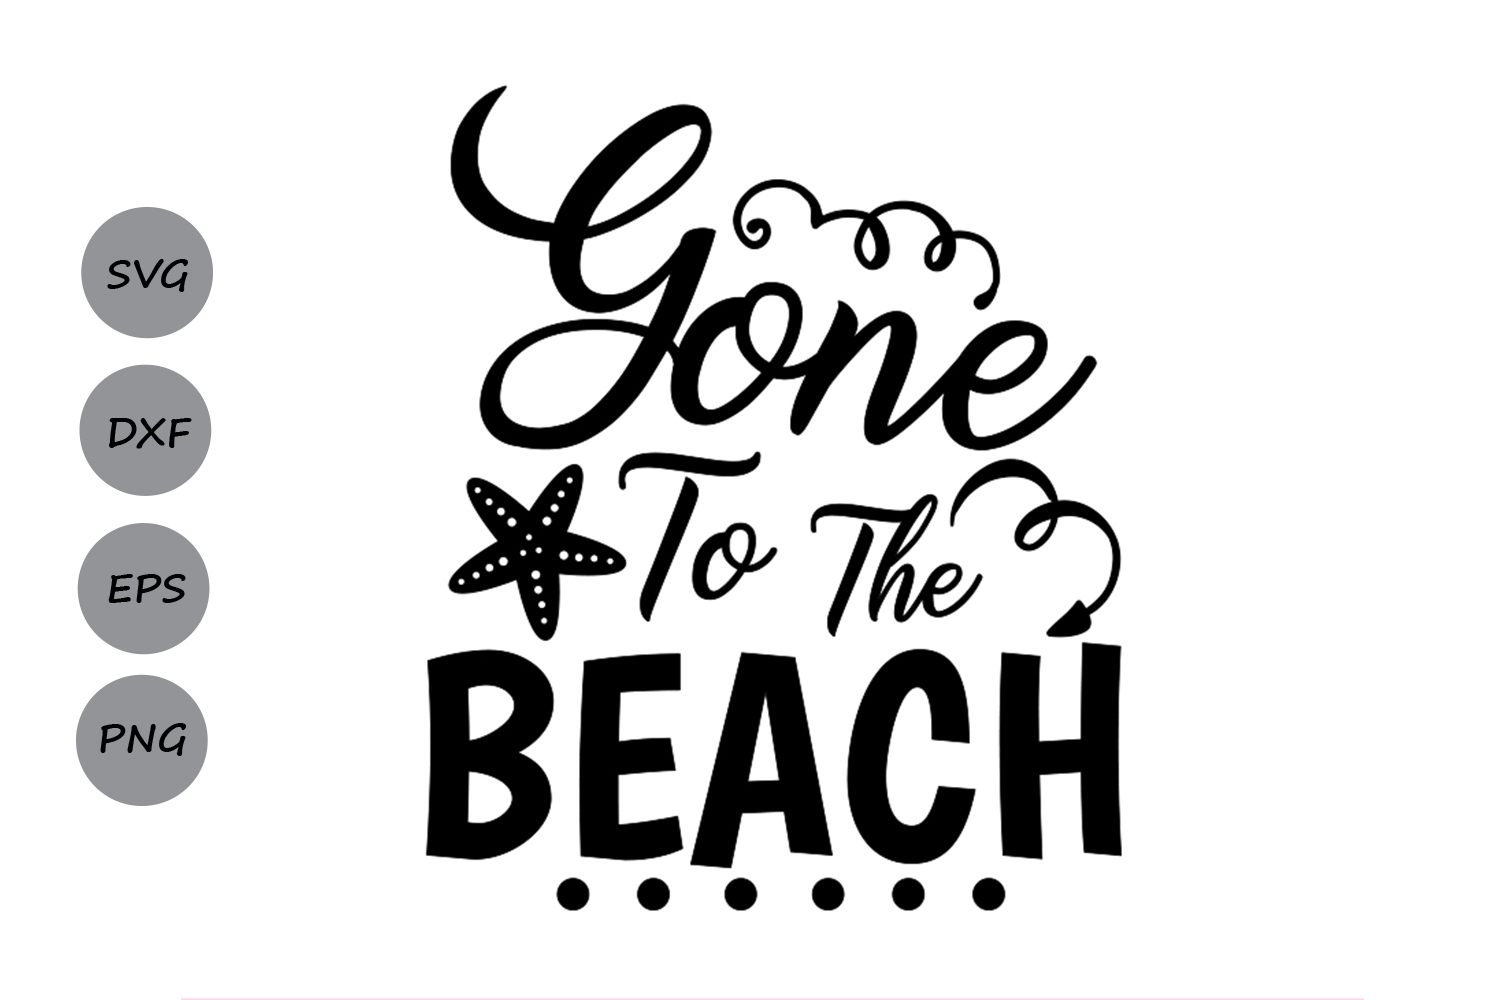 Beach holiday sayings clipart jpg freeuse stock Gone To The Beach SVG, Summer SVG, Beach SVG, Summer Beach Svg, Summer  Sayings Svg, Summer Vacation, Silhouette Cricut Files, Cutting Files. jpg freeuse stock